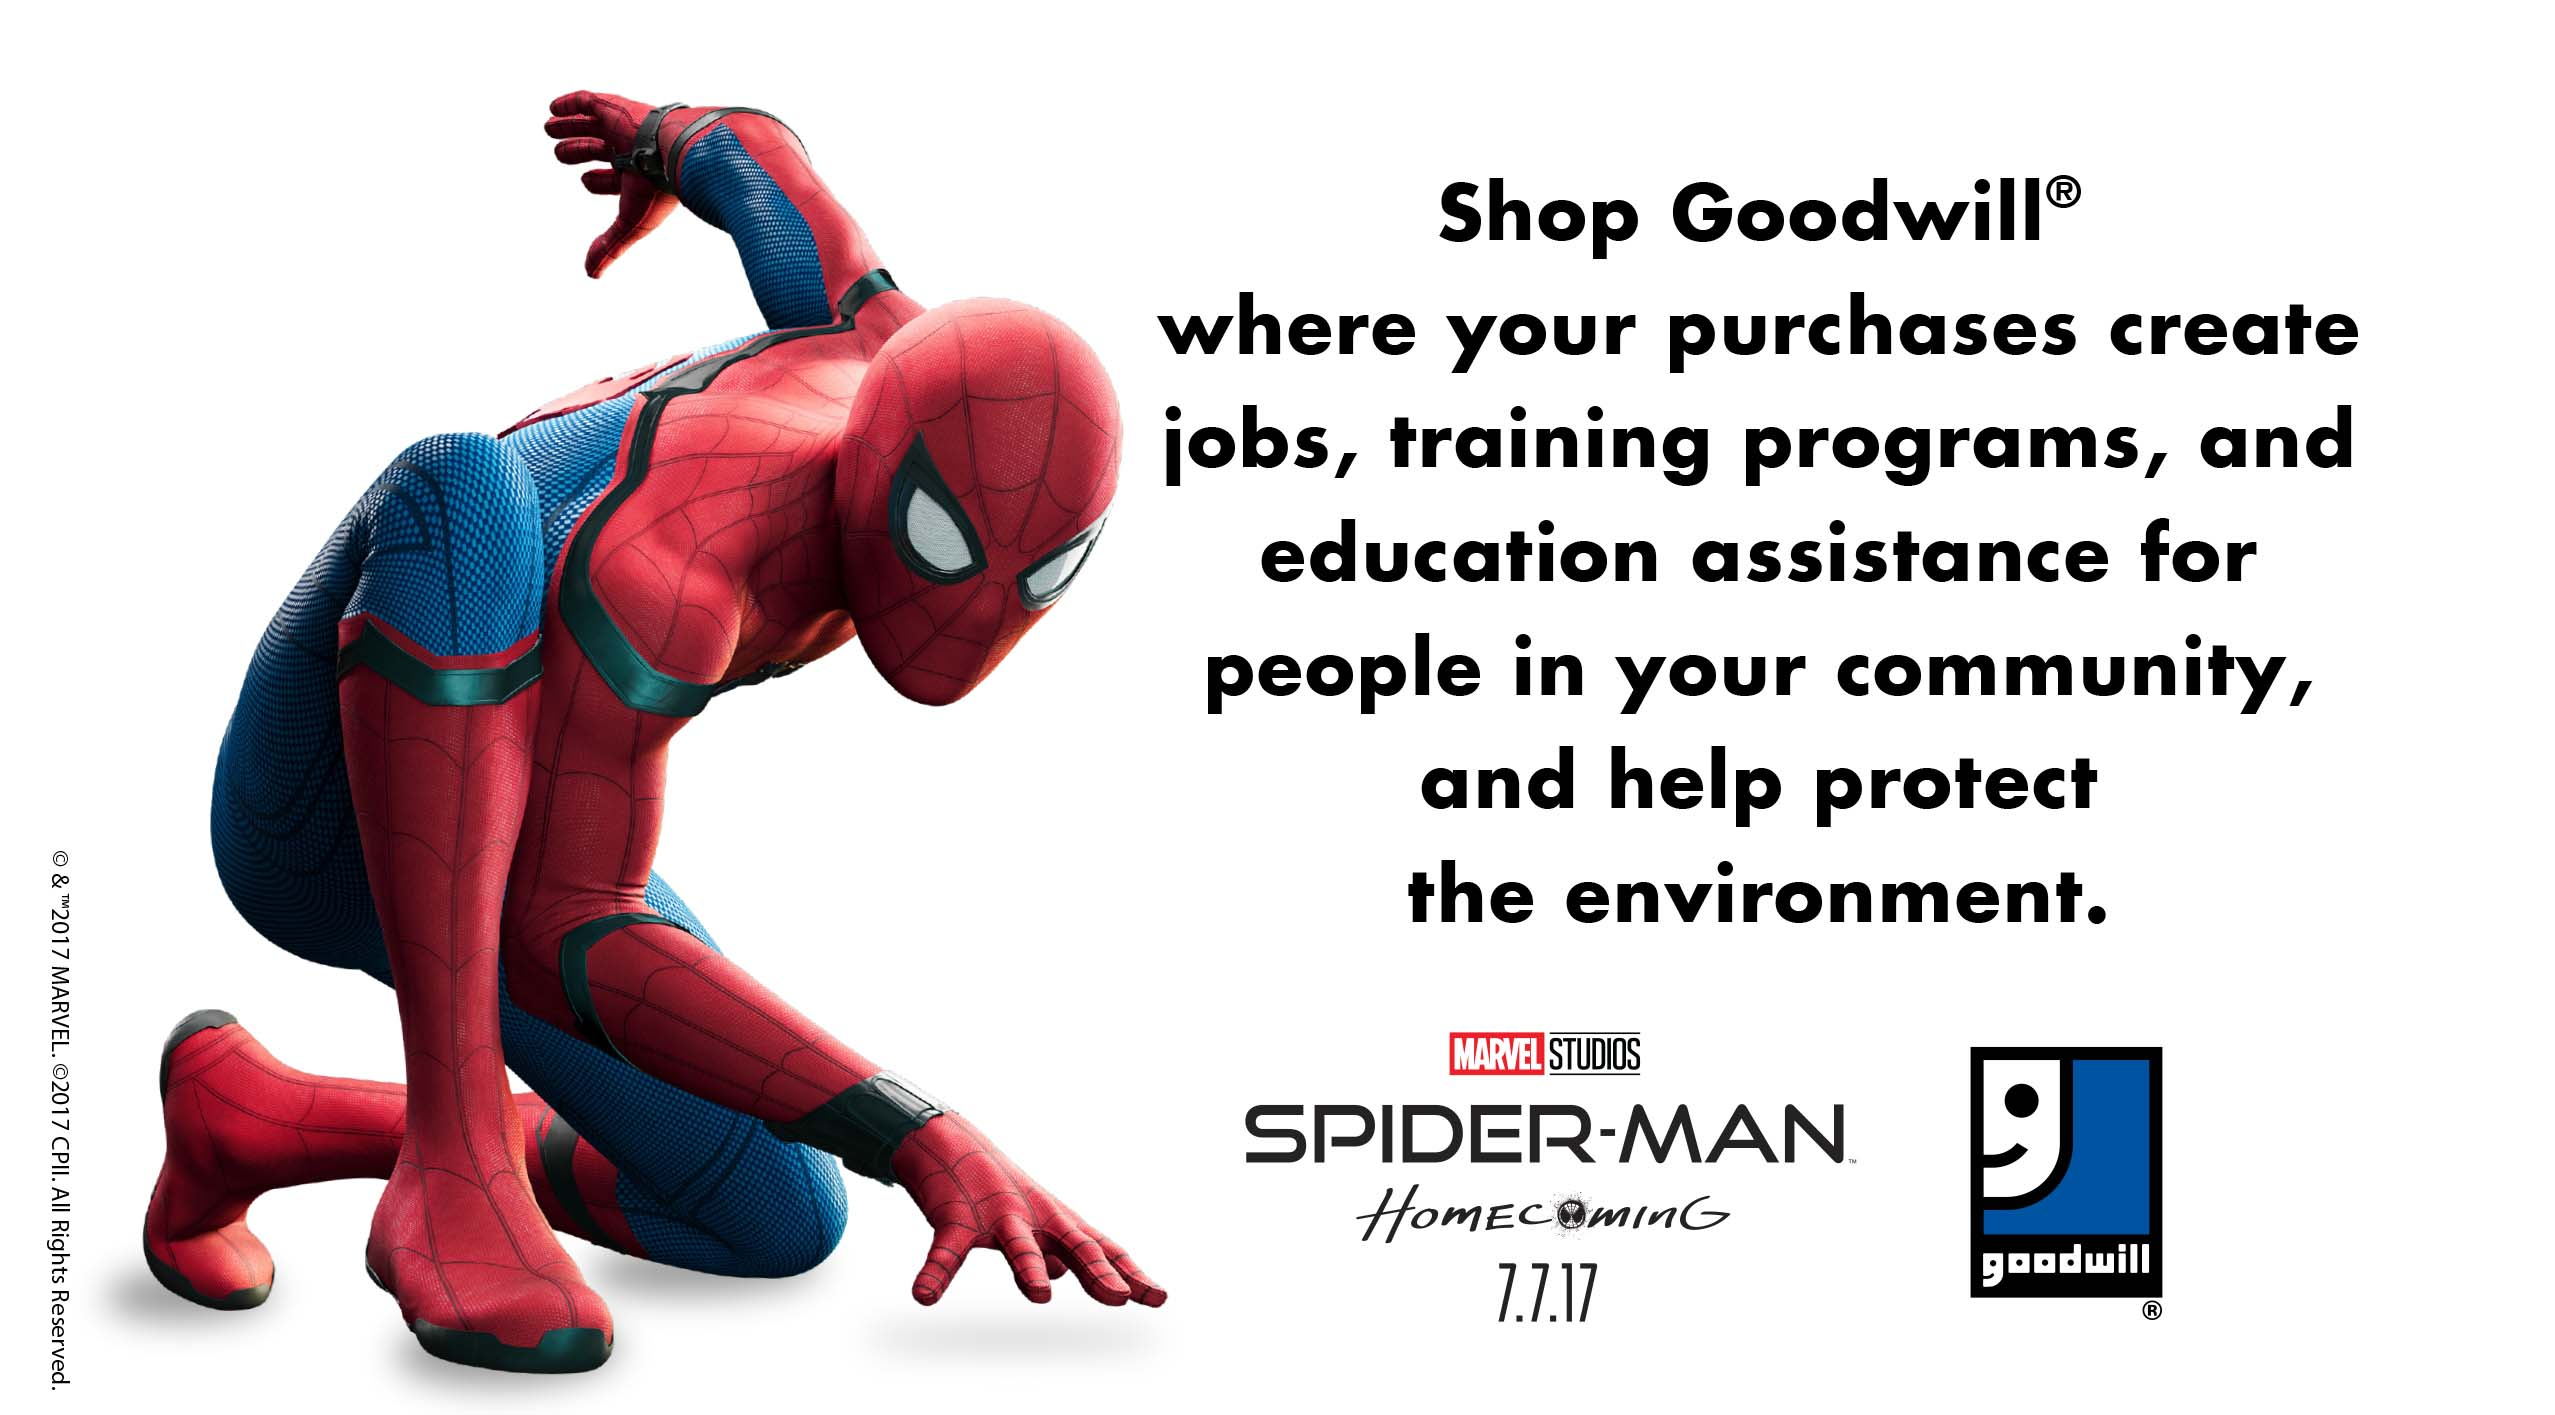 Goodwill® And Sony Pictures Announce Winner Of DIY Spider-Man Suit Contest And Champion Social/Environmental Cause